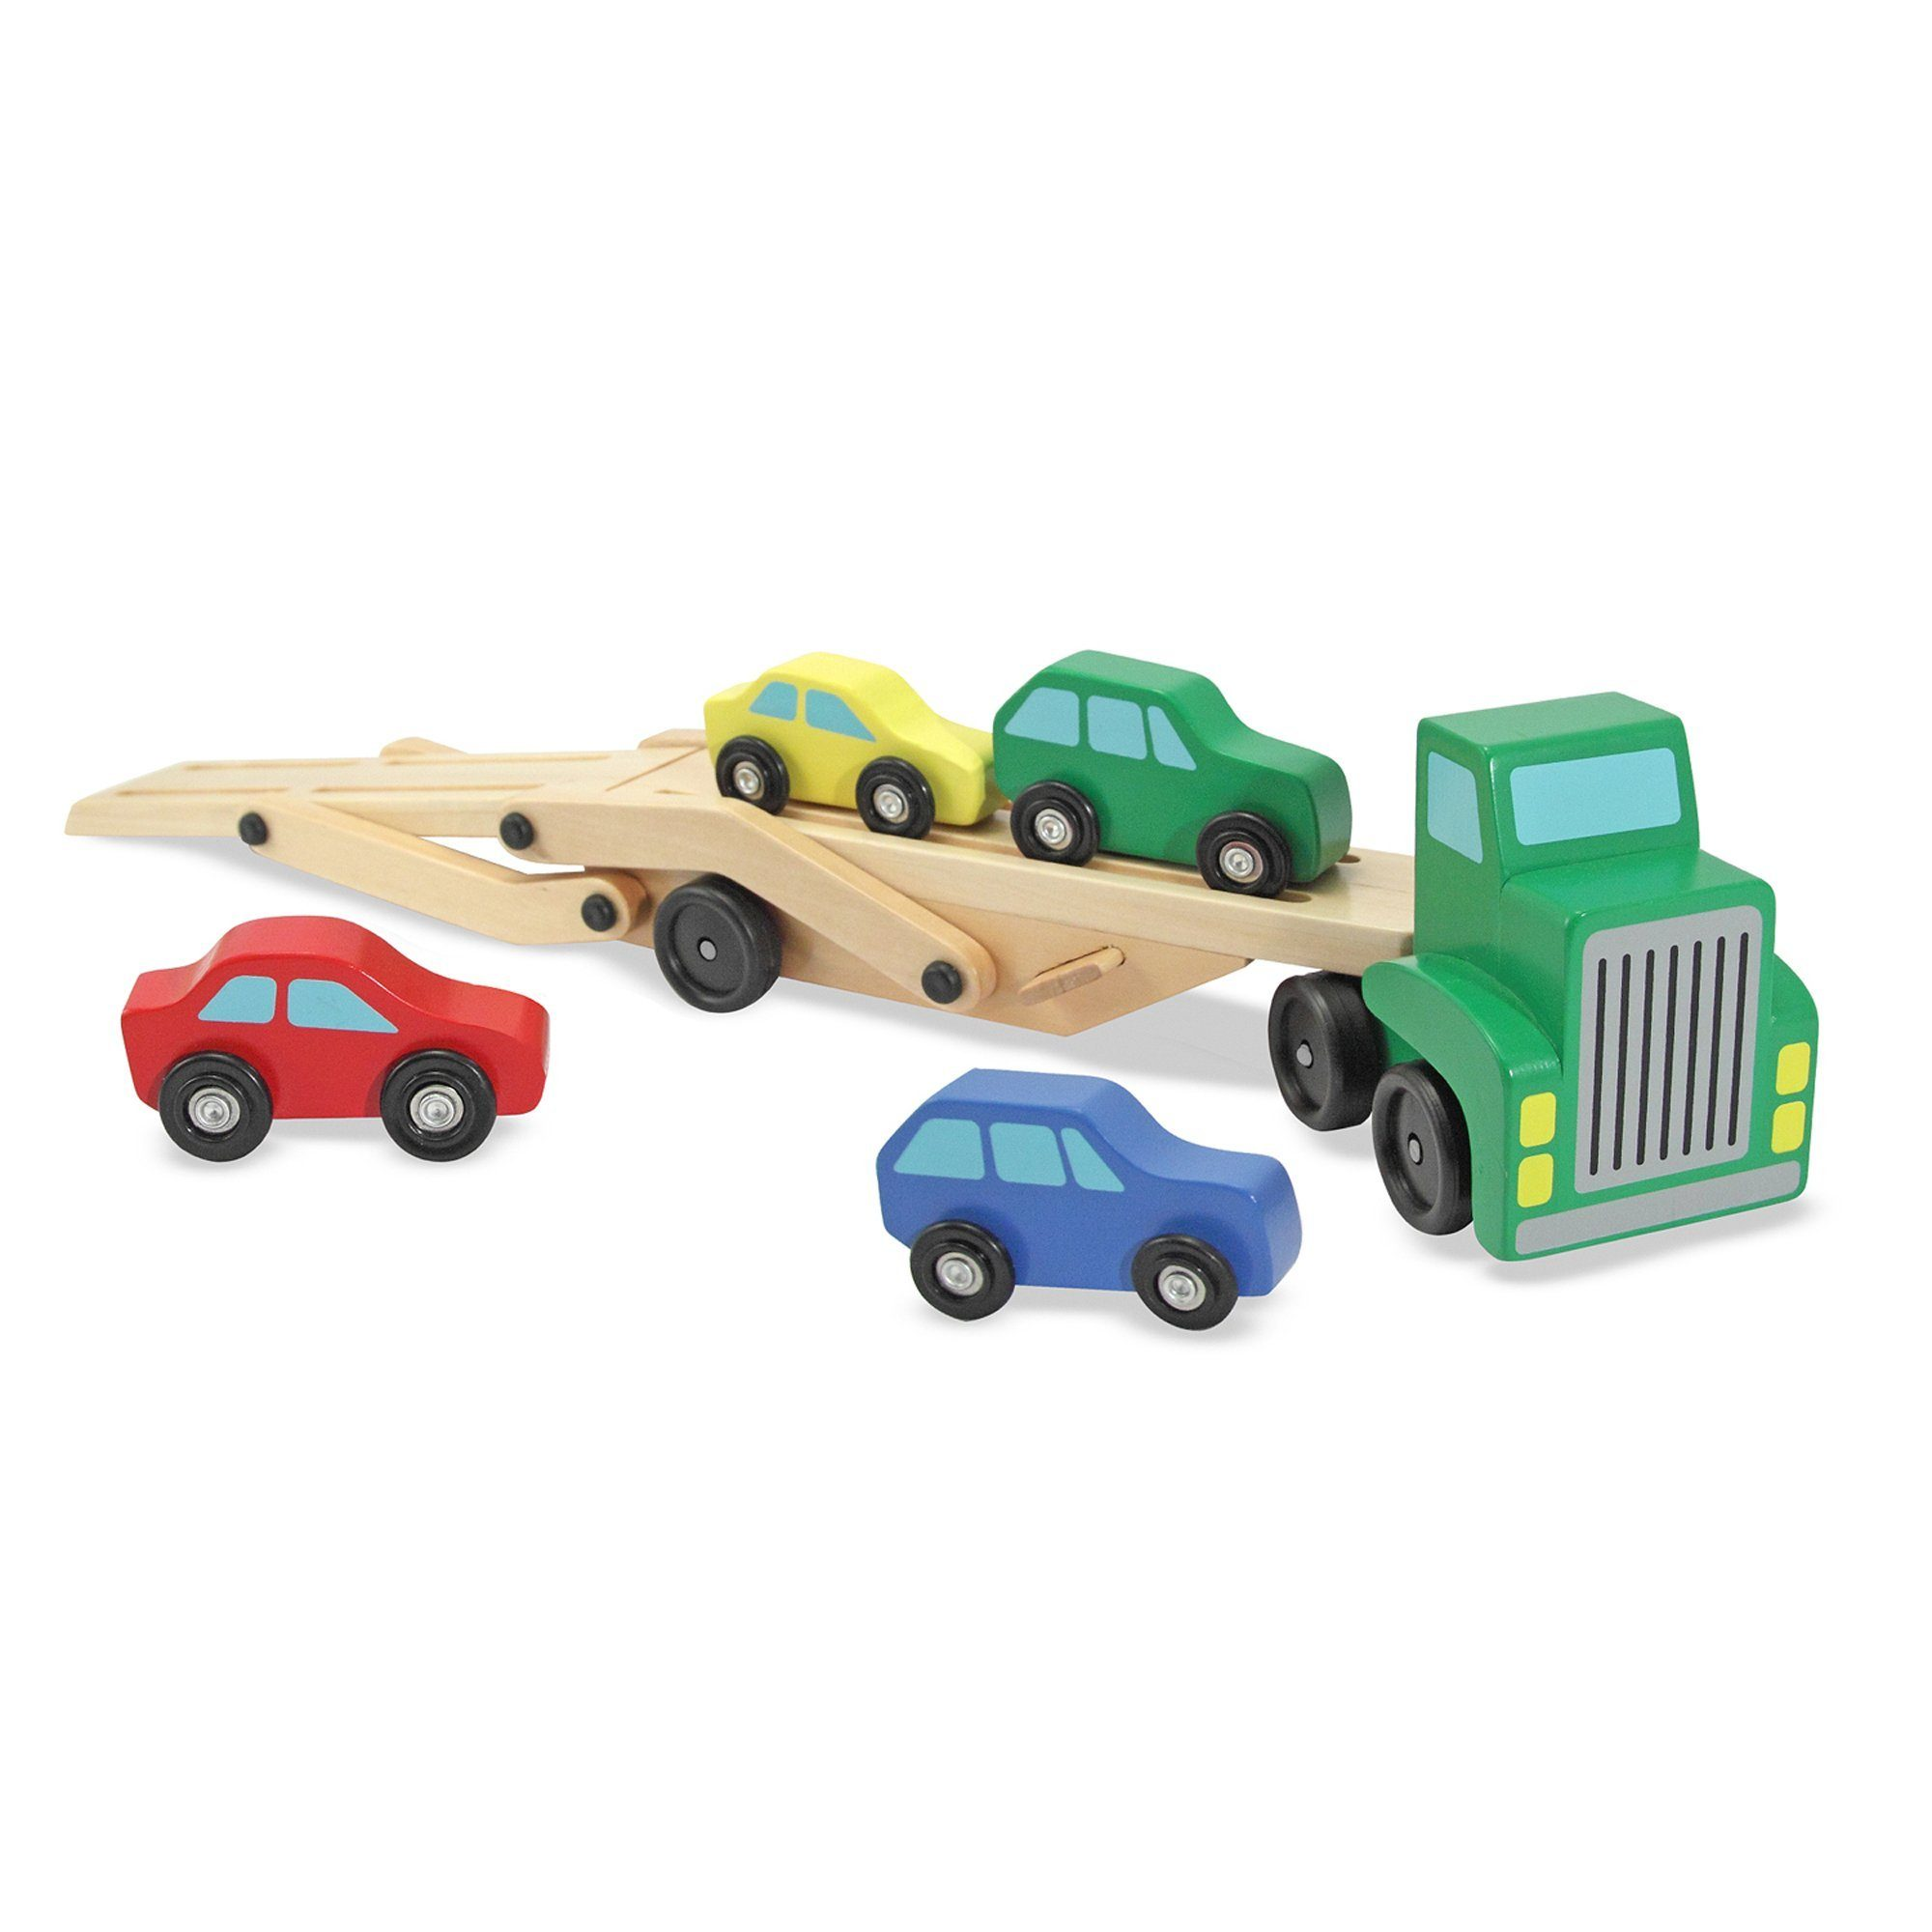 Melissa & Doug 14096 Car Carrier Truck & Cars Wooden Toy Set - TOYBOX Toy Shop